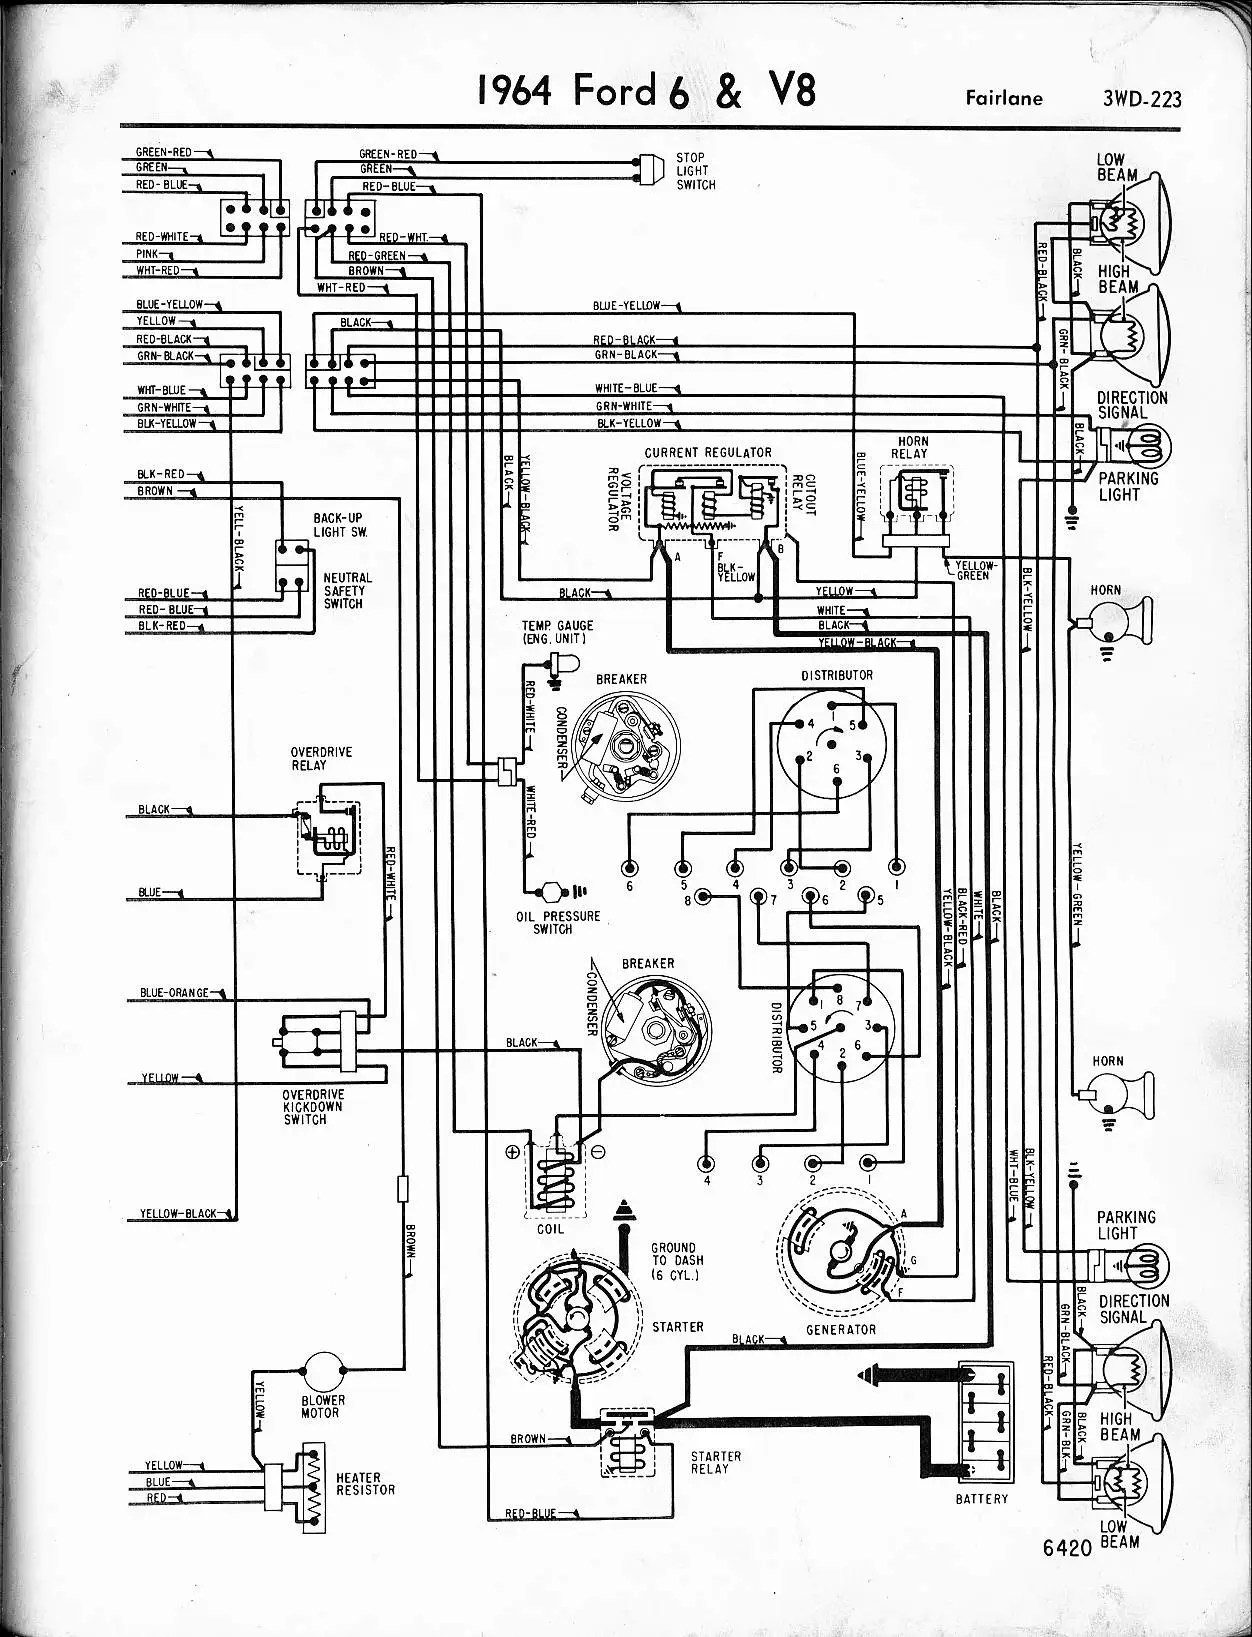 small resolution of 64 f100 wiring diagram wiring schematic data ford pinto ignition wiring diagram 64 f100 wiring diagram